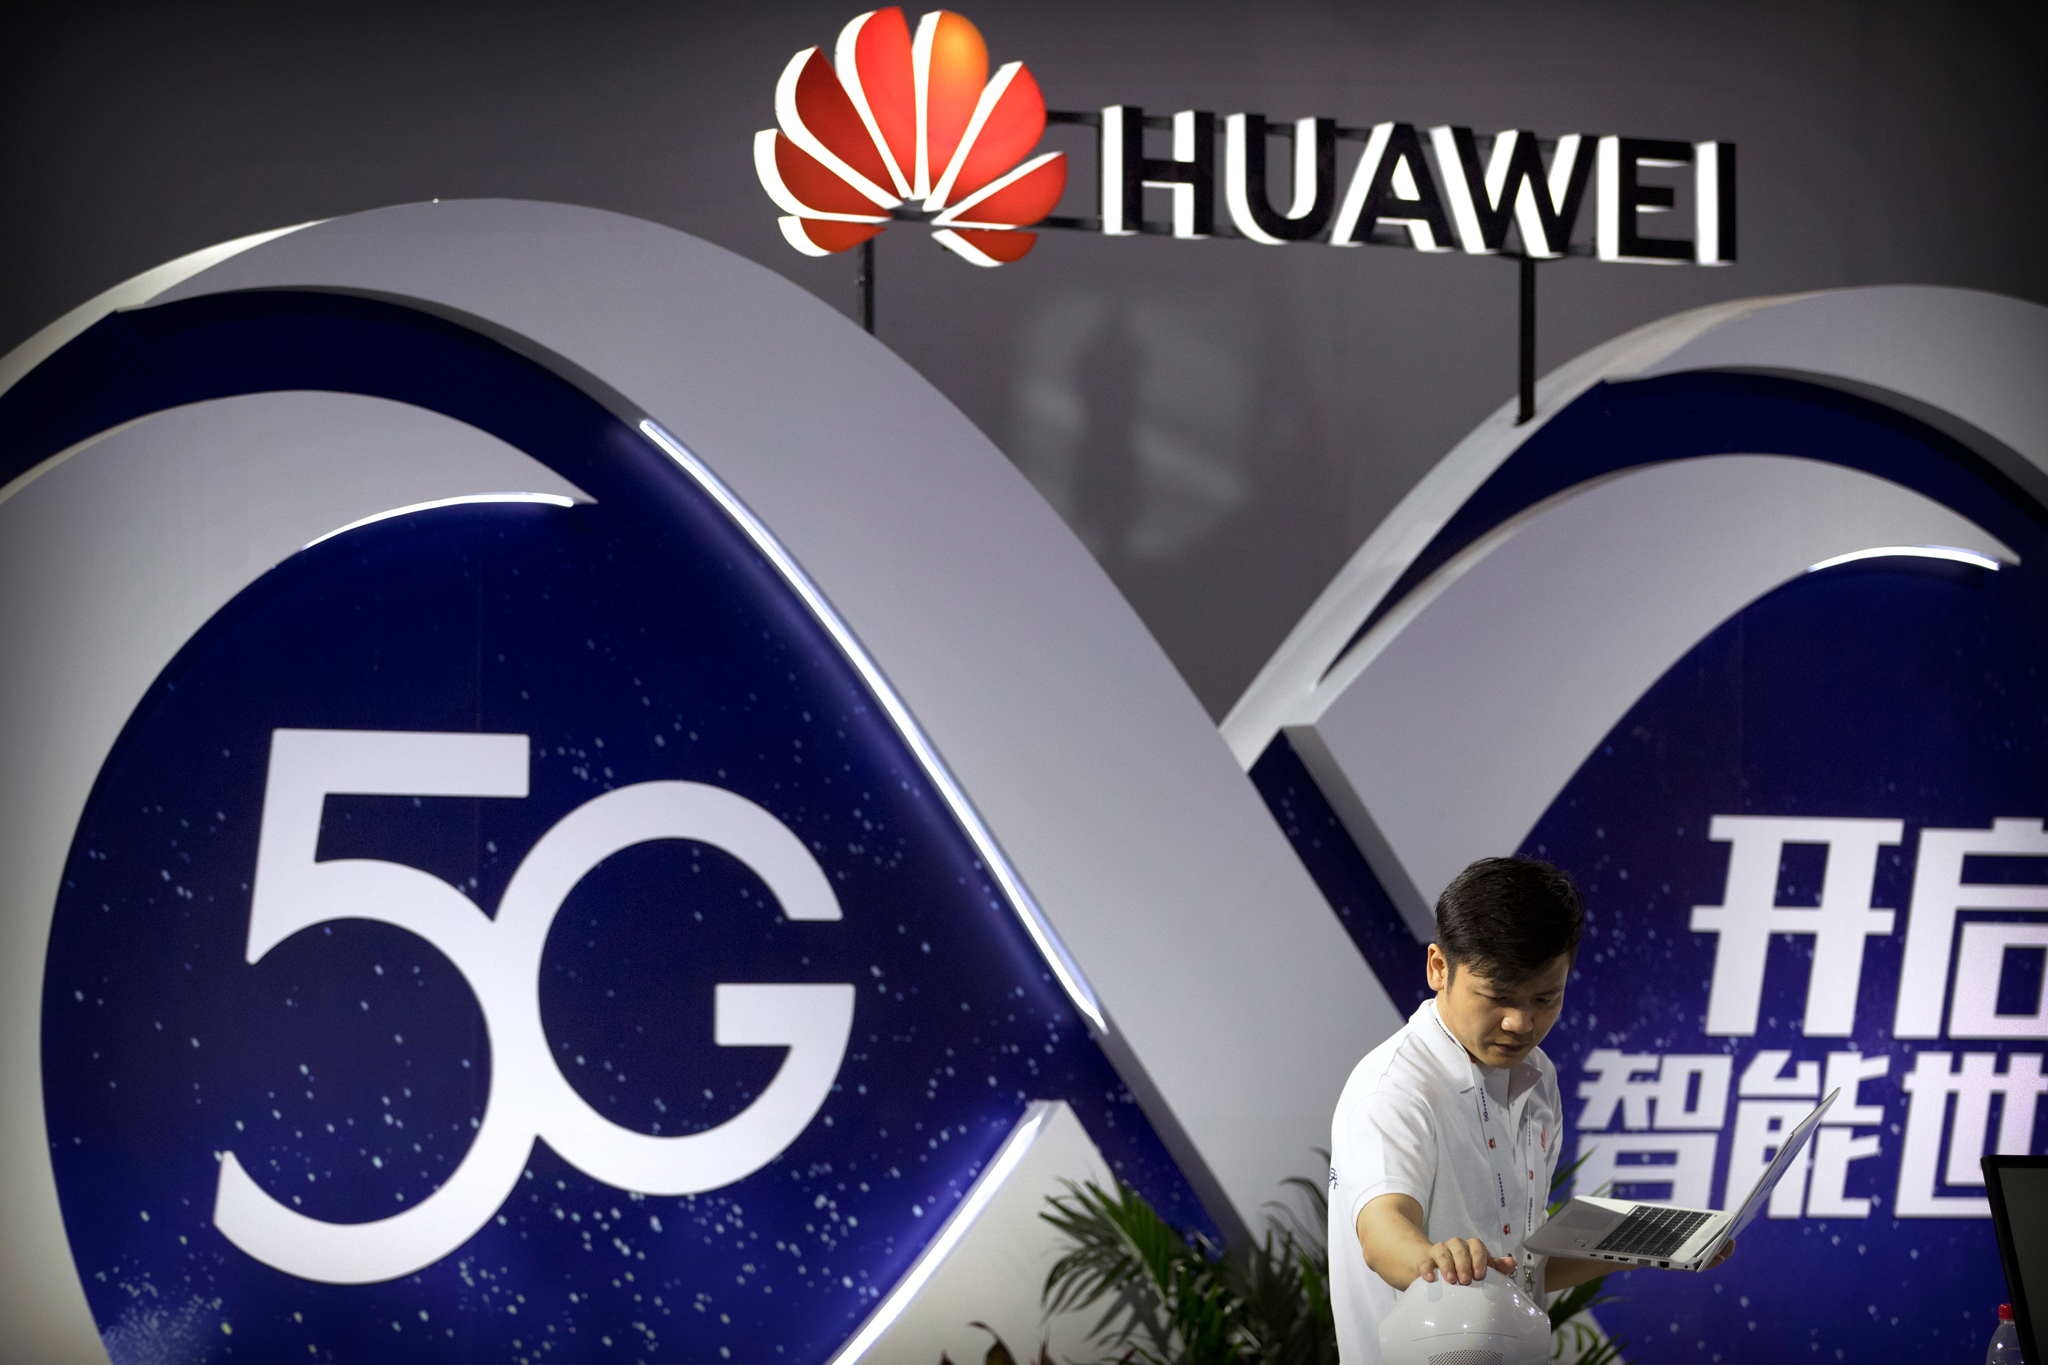 UK set to phase out Huawei involvement in 5G networks by 2023